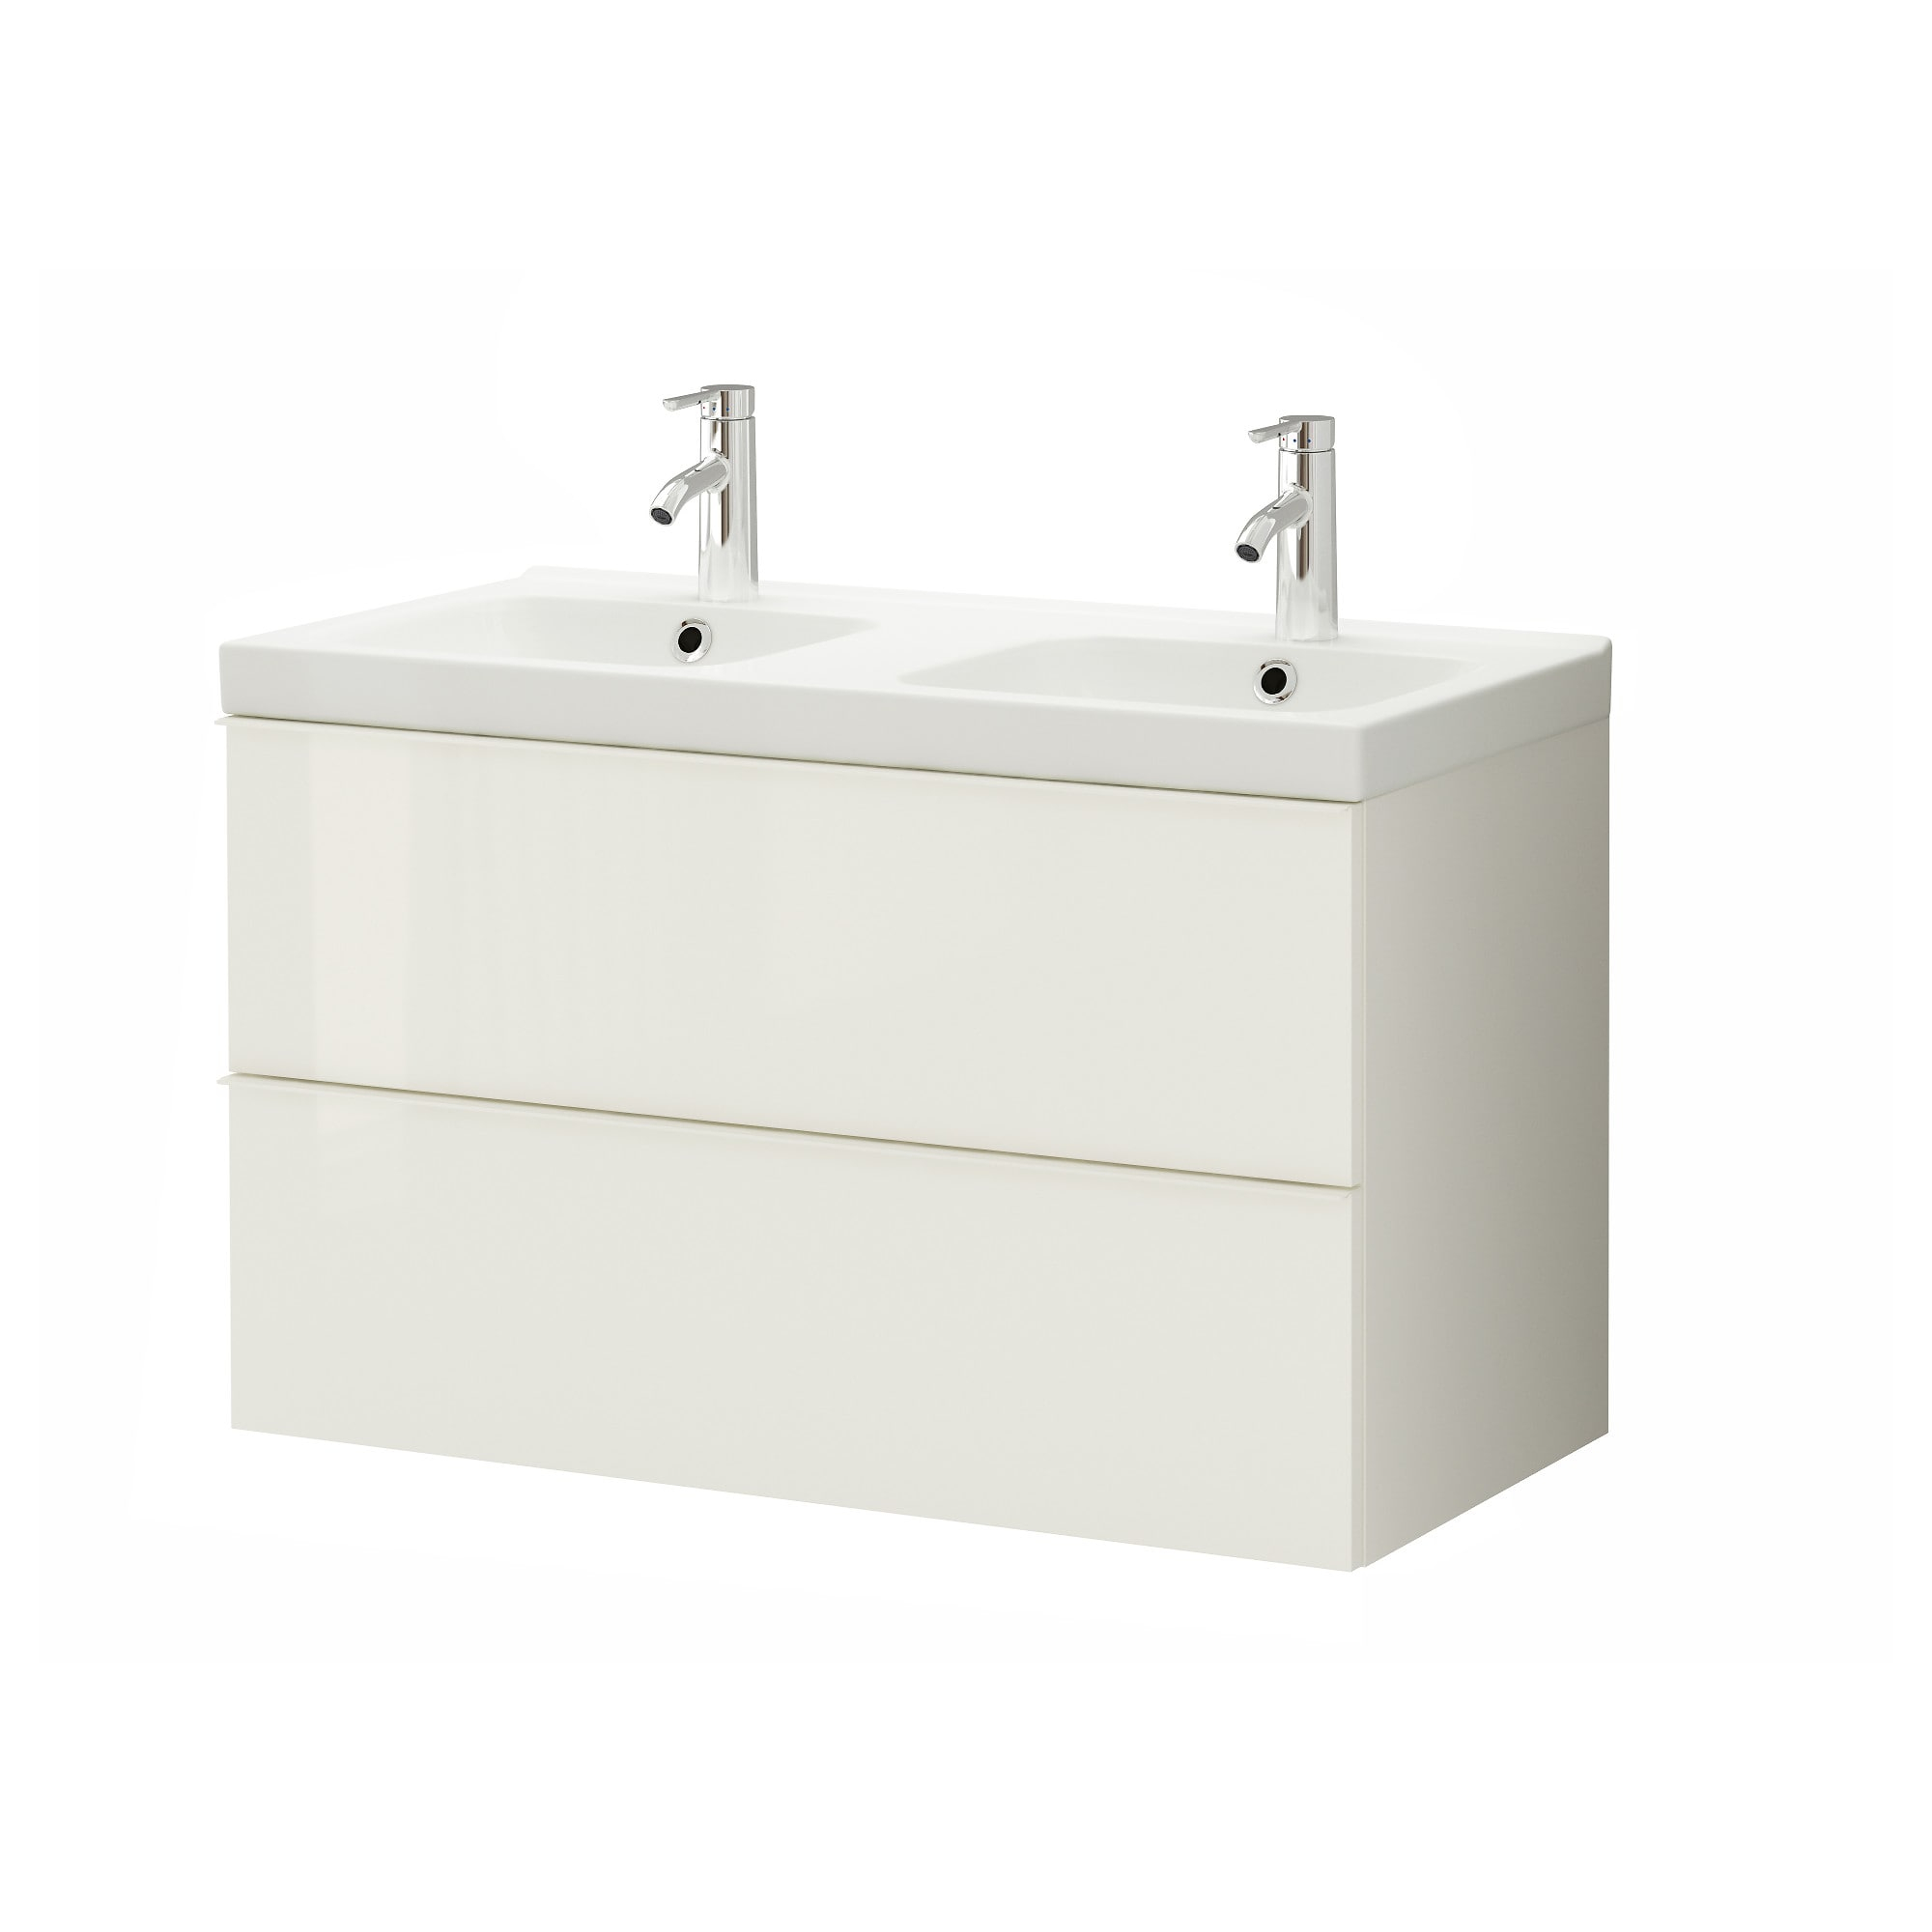 Glamorous Vanity Units - Sink Cabinets & Wash Stands | Ikea with Bathroom Sink With Cabinet